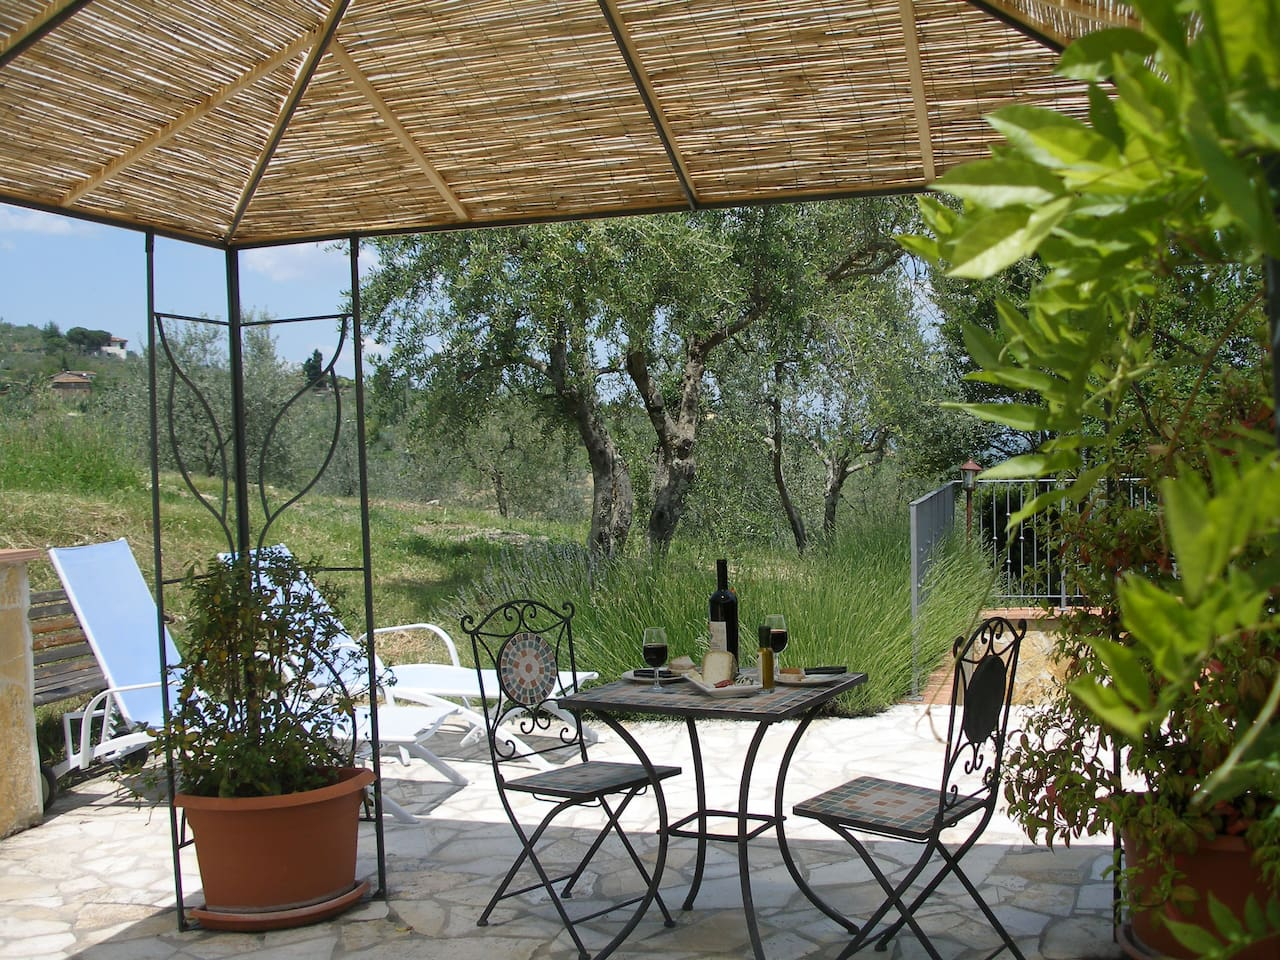 Private Terrace with sun loungers and dining area